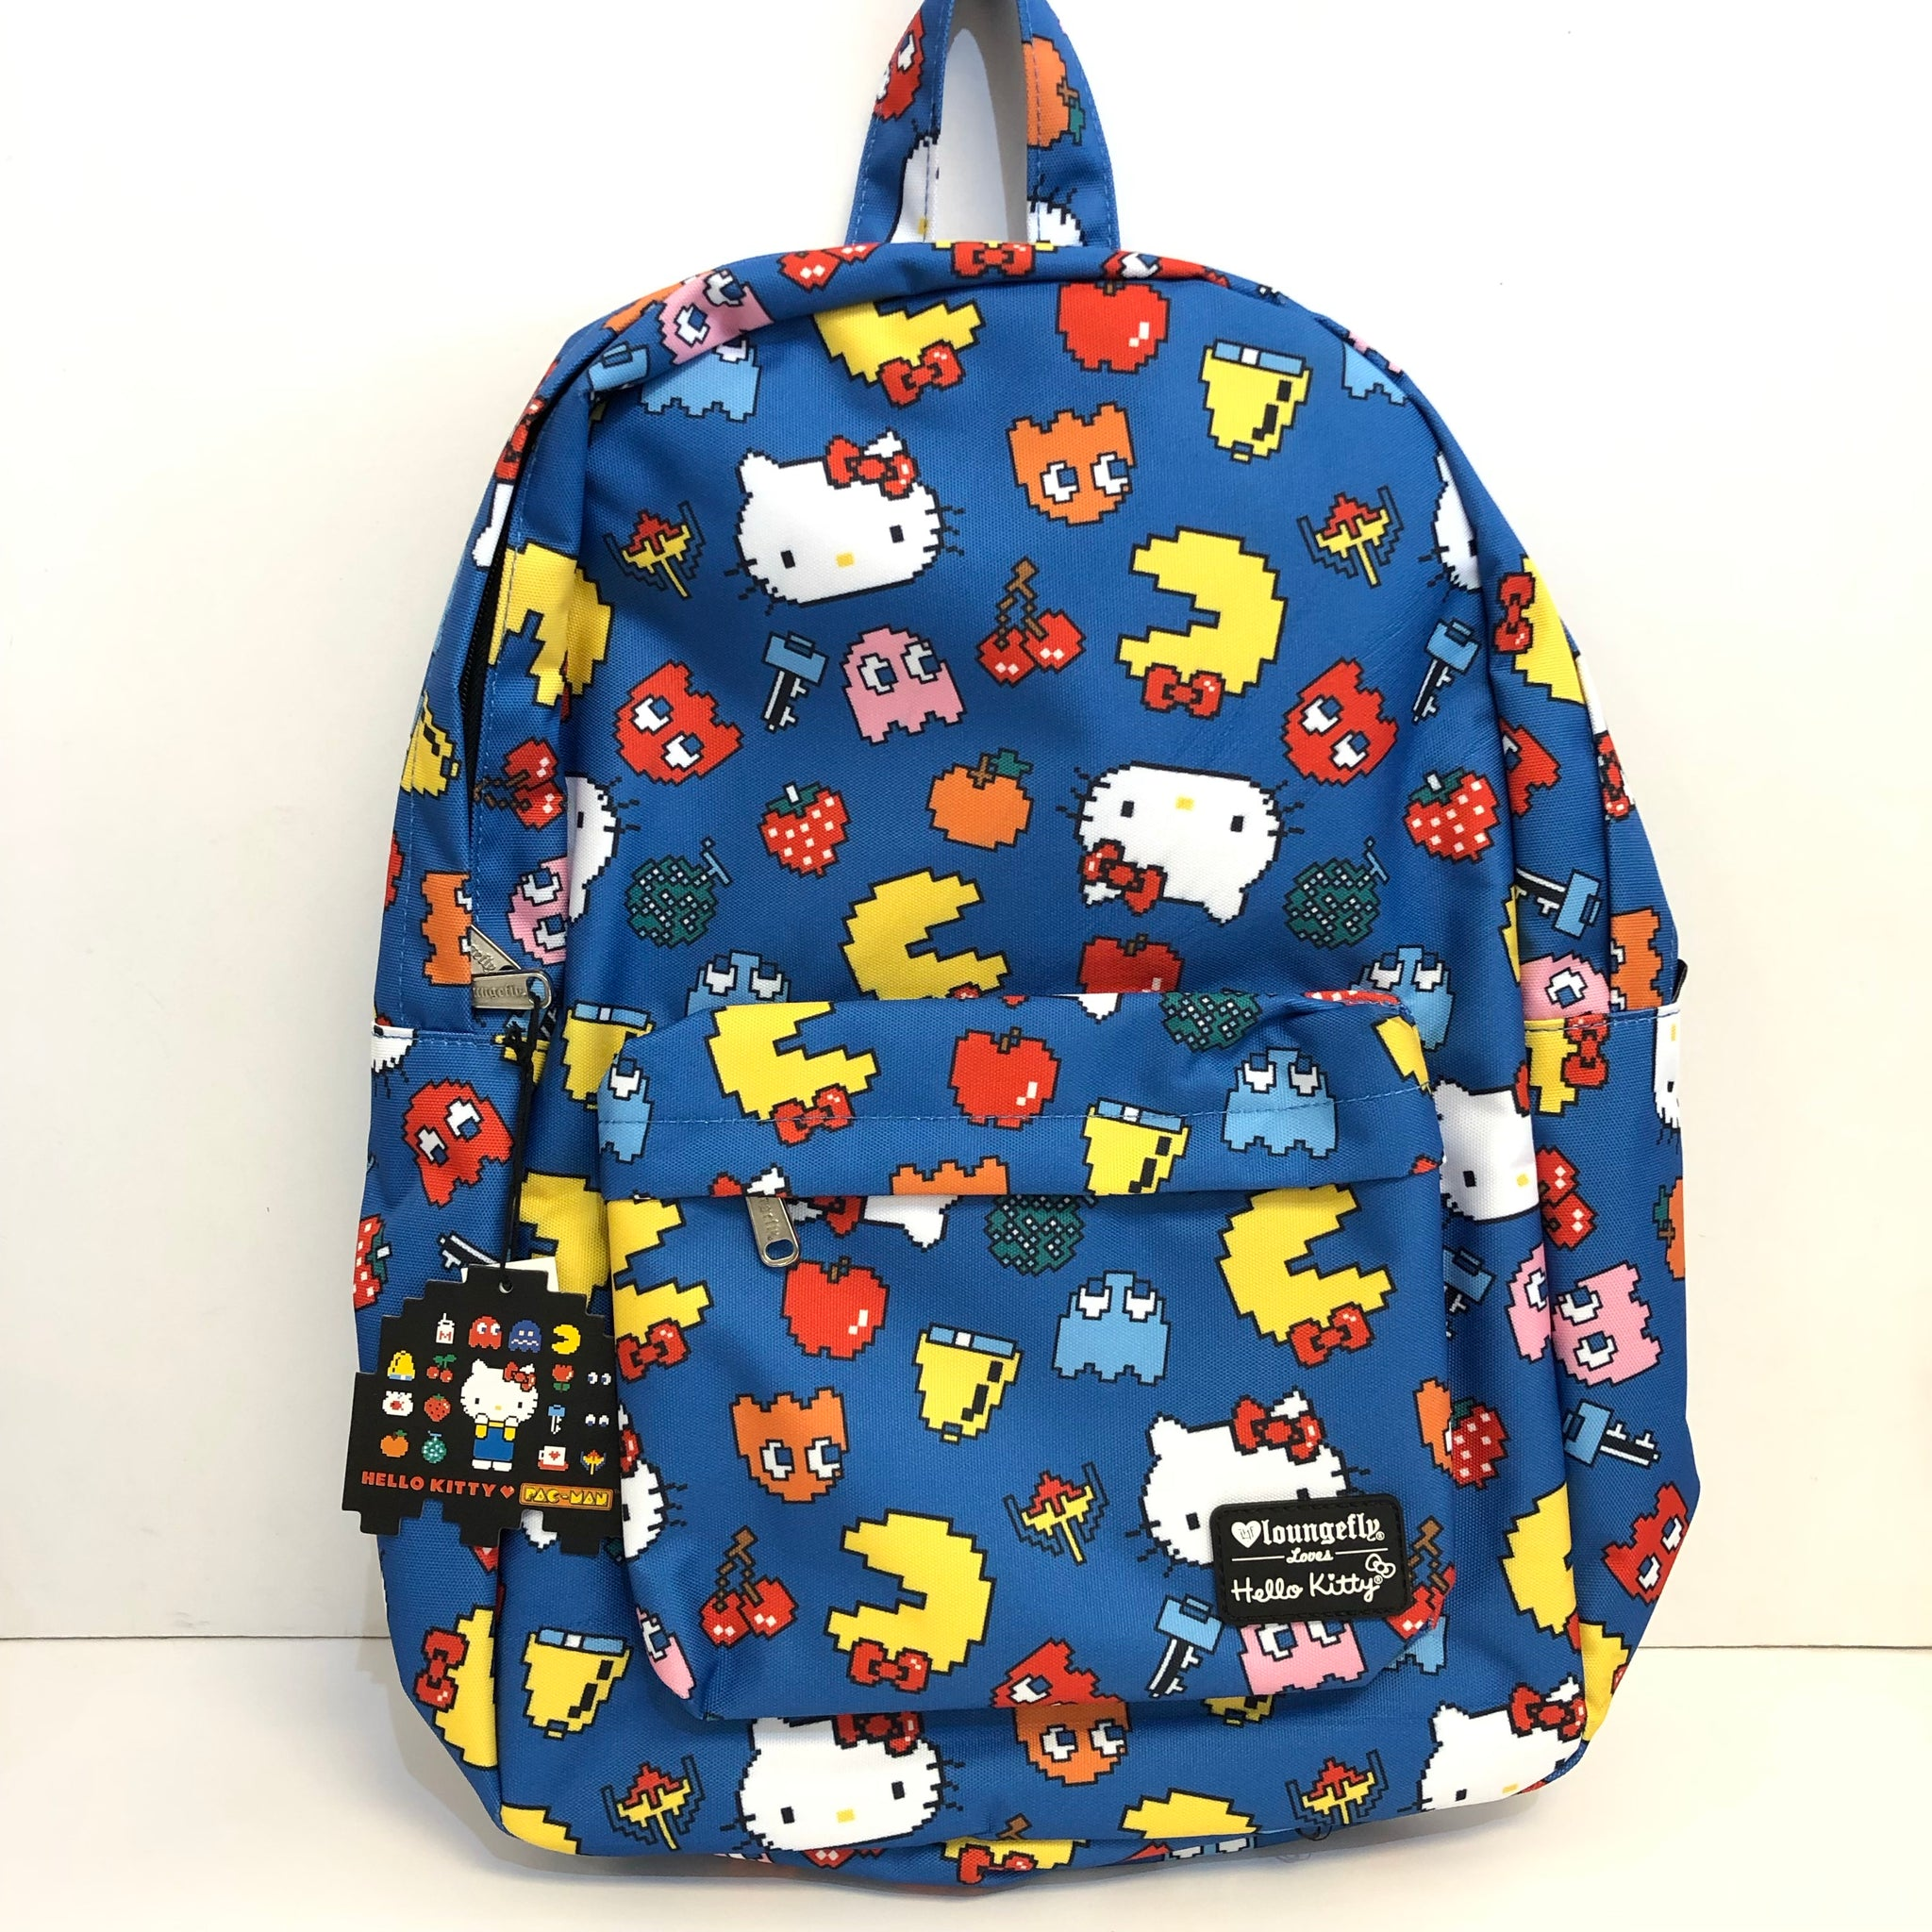 Hello Kitty x Pac-Man Backpack by Loungefly